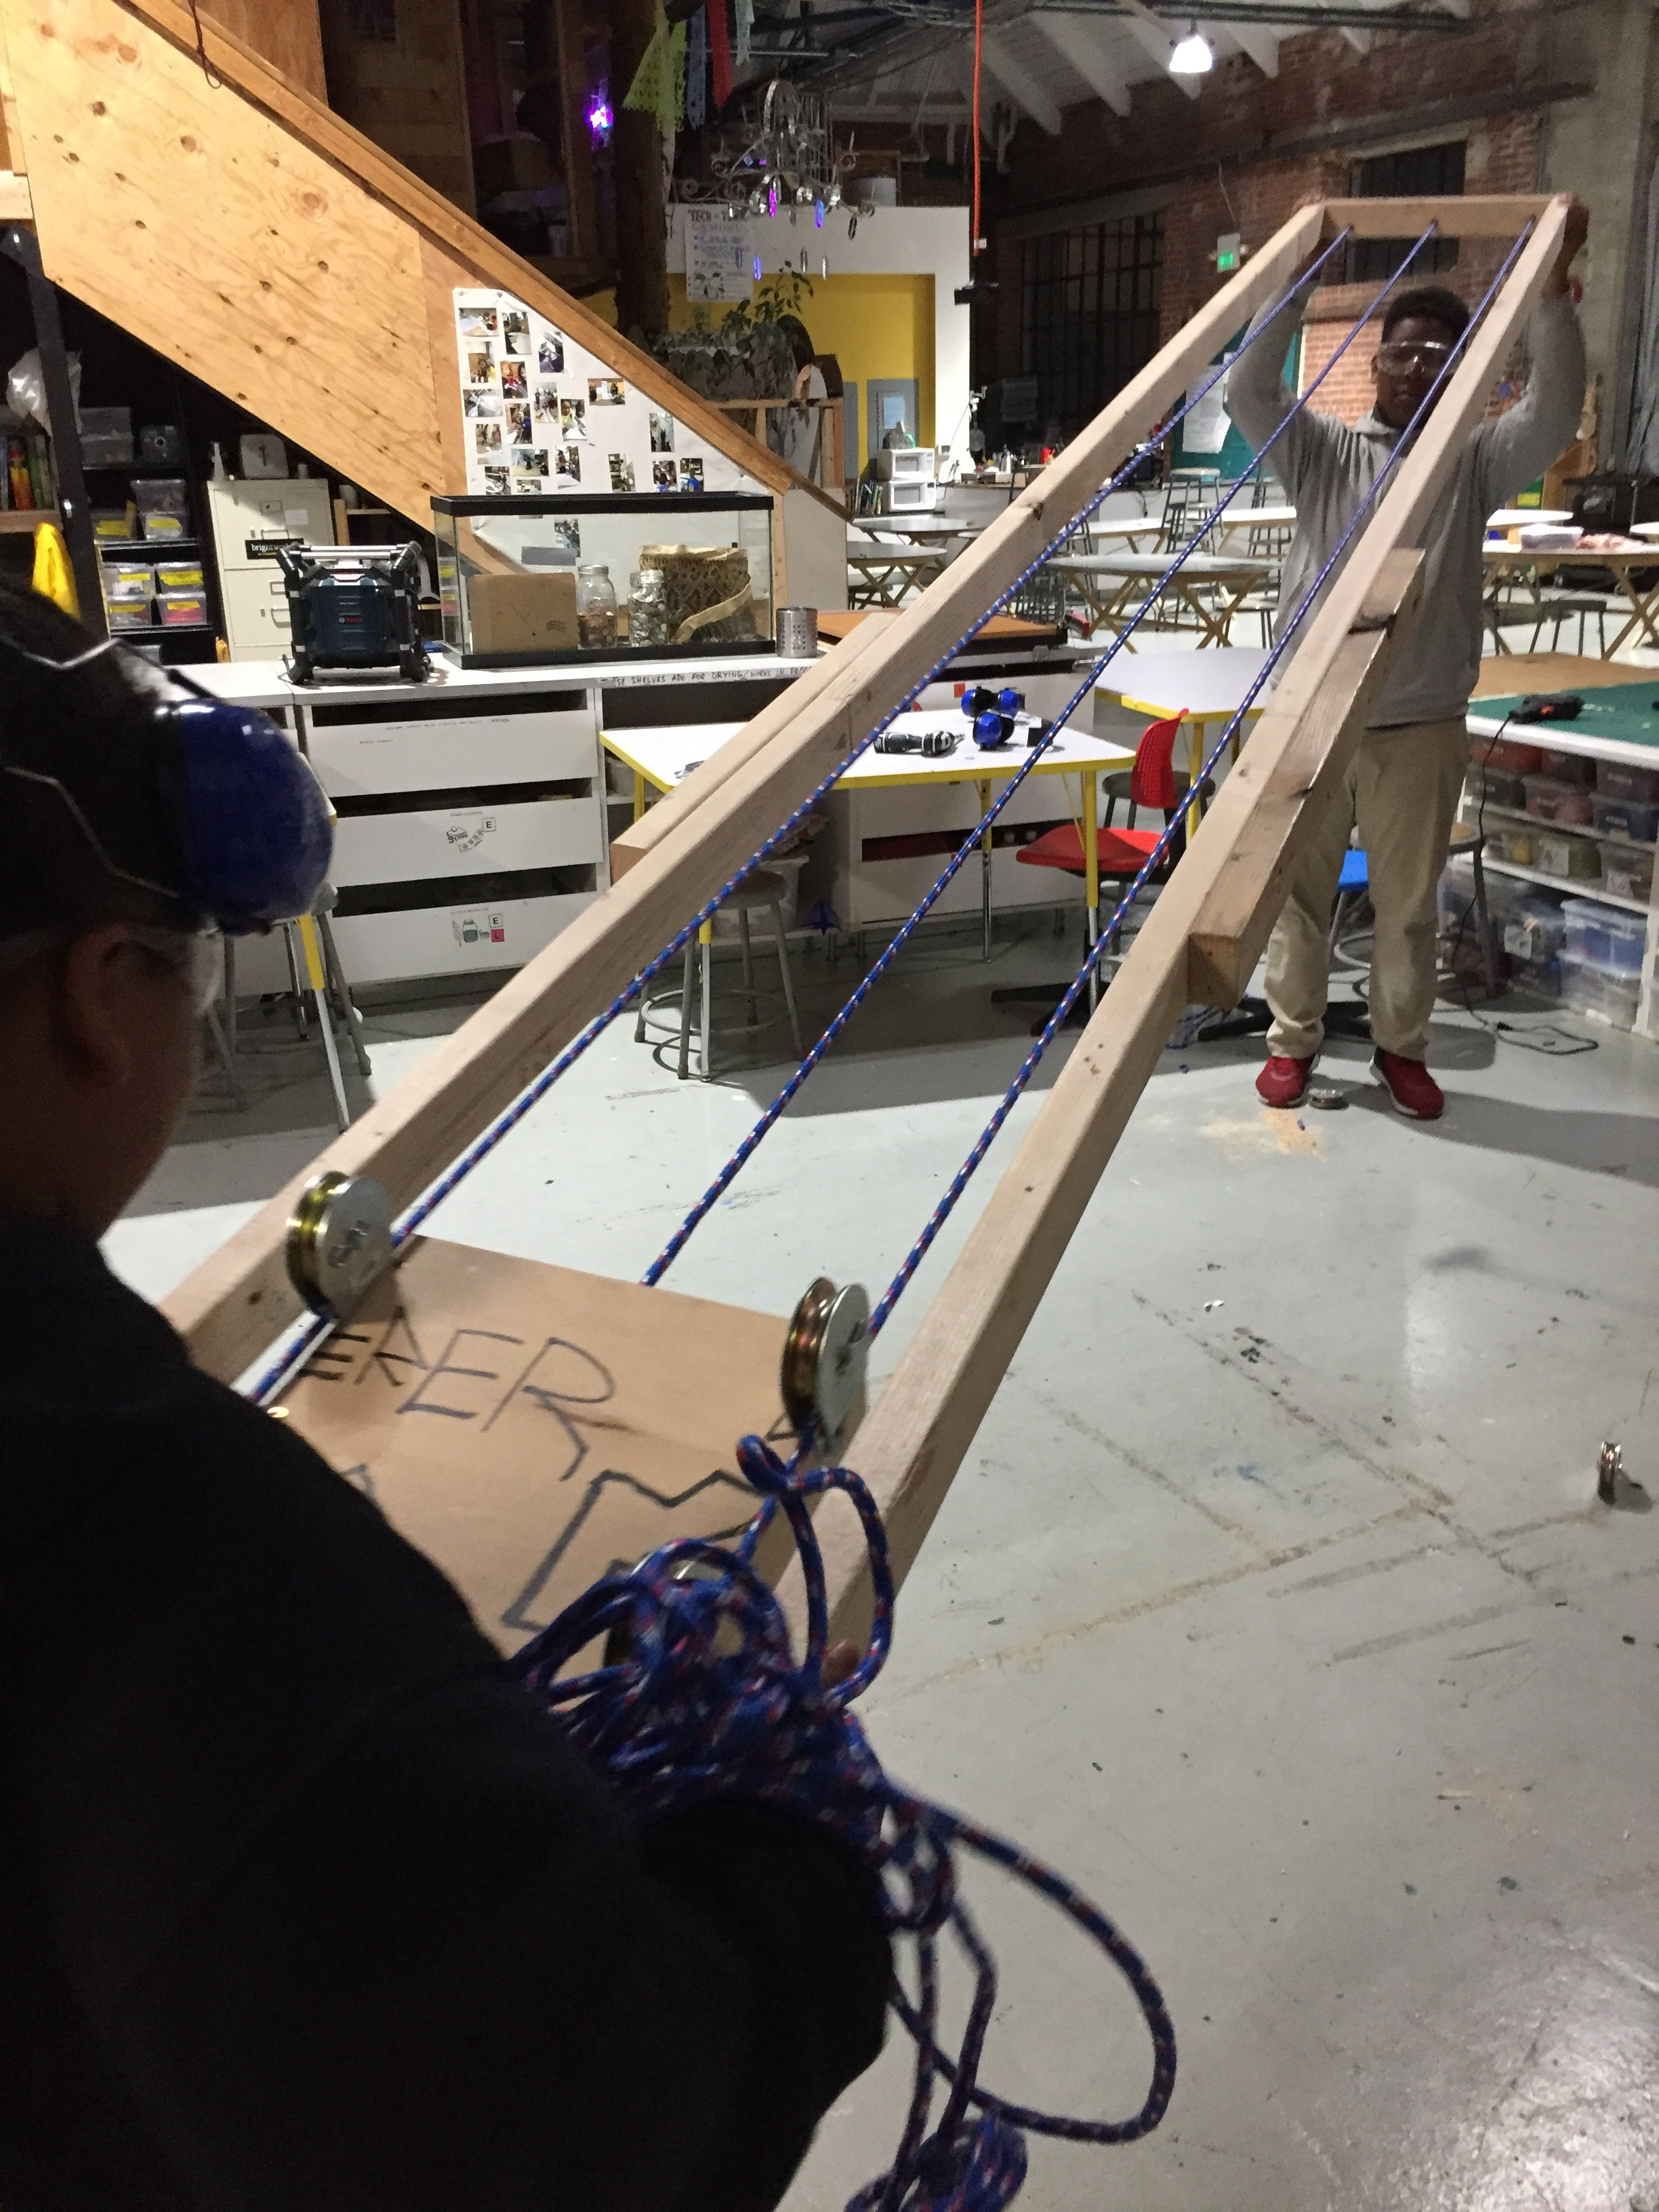 The car glided perfectly along the ropes! A successful test!